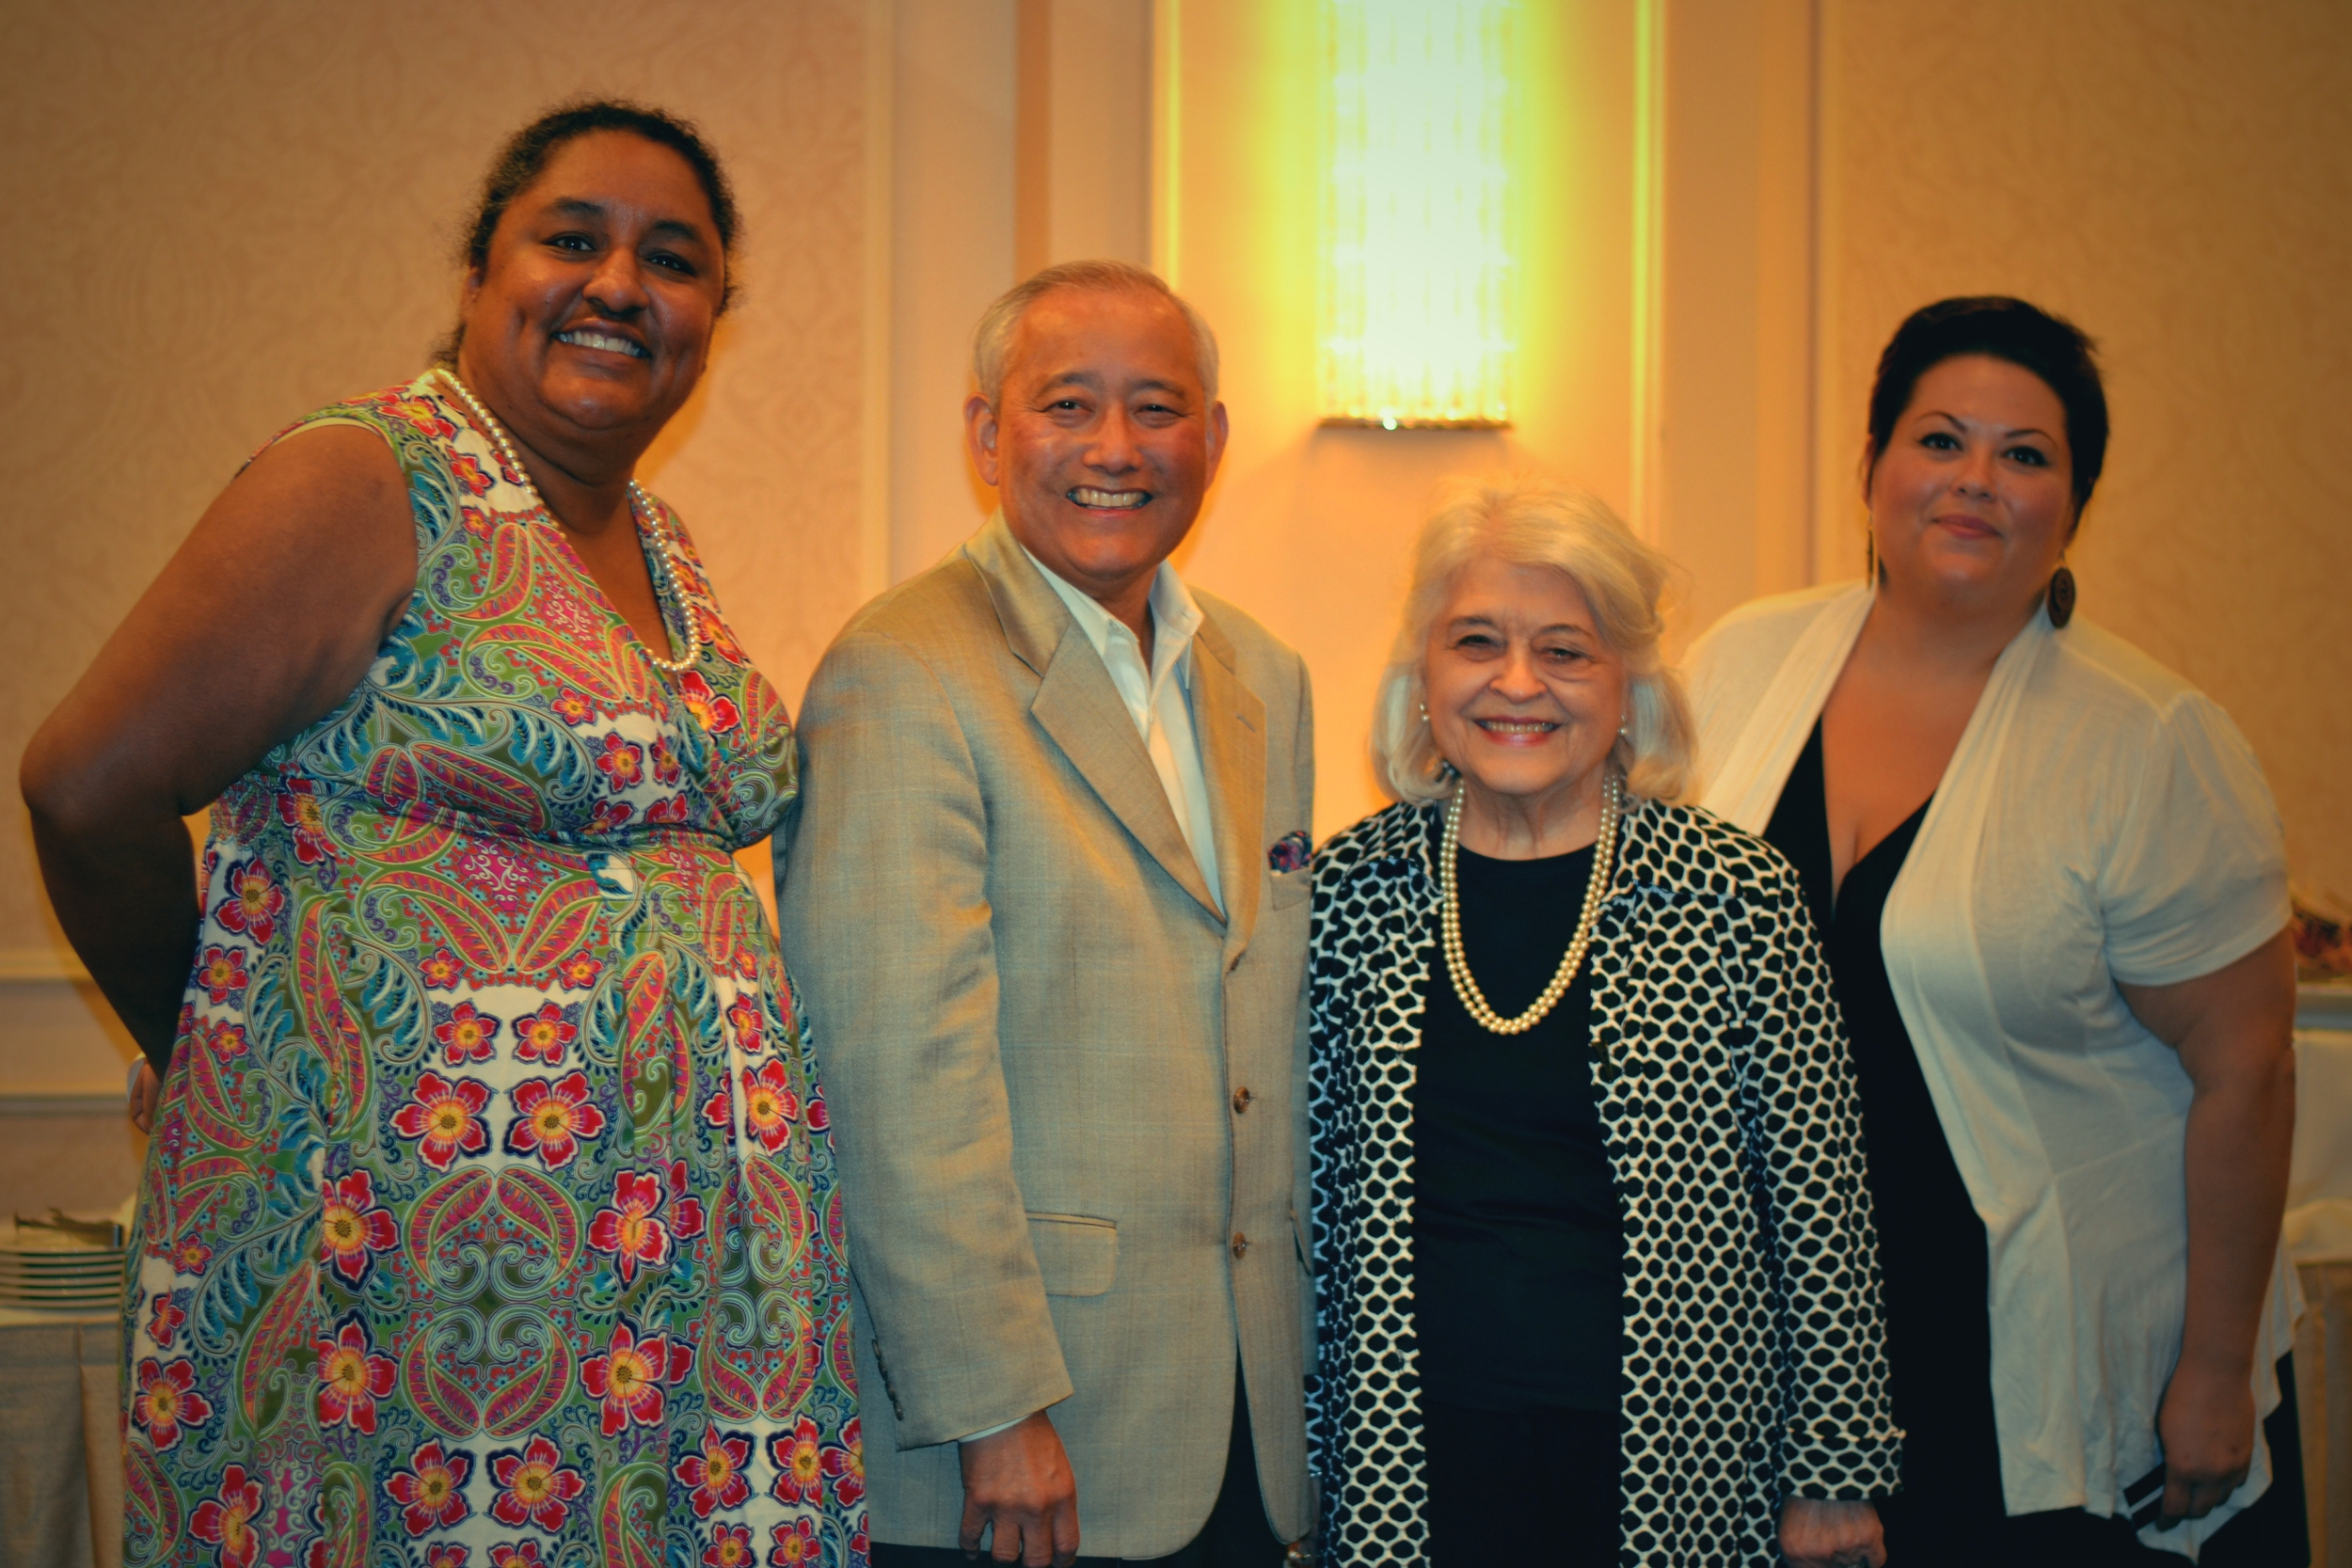 Above : EDI's Executive Director Emeritus, Alan Sugiyama, thanks Phyllis Kenney, former State Representative, and Sandra Huber & Sophia Beltran from Familias Unidas for coming to the event.